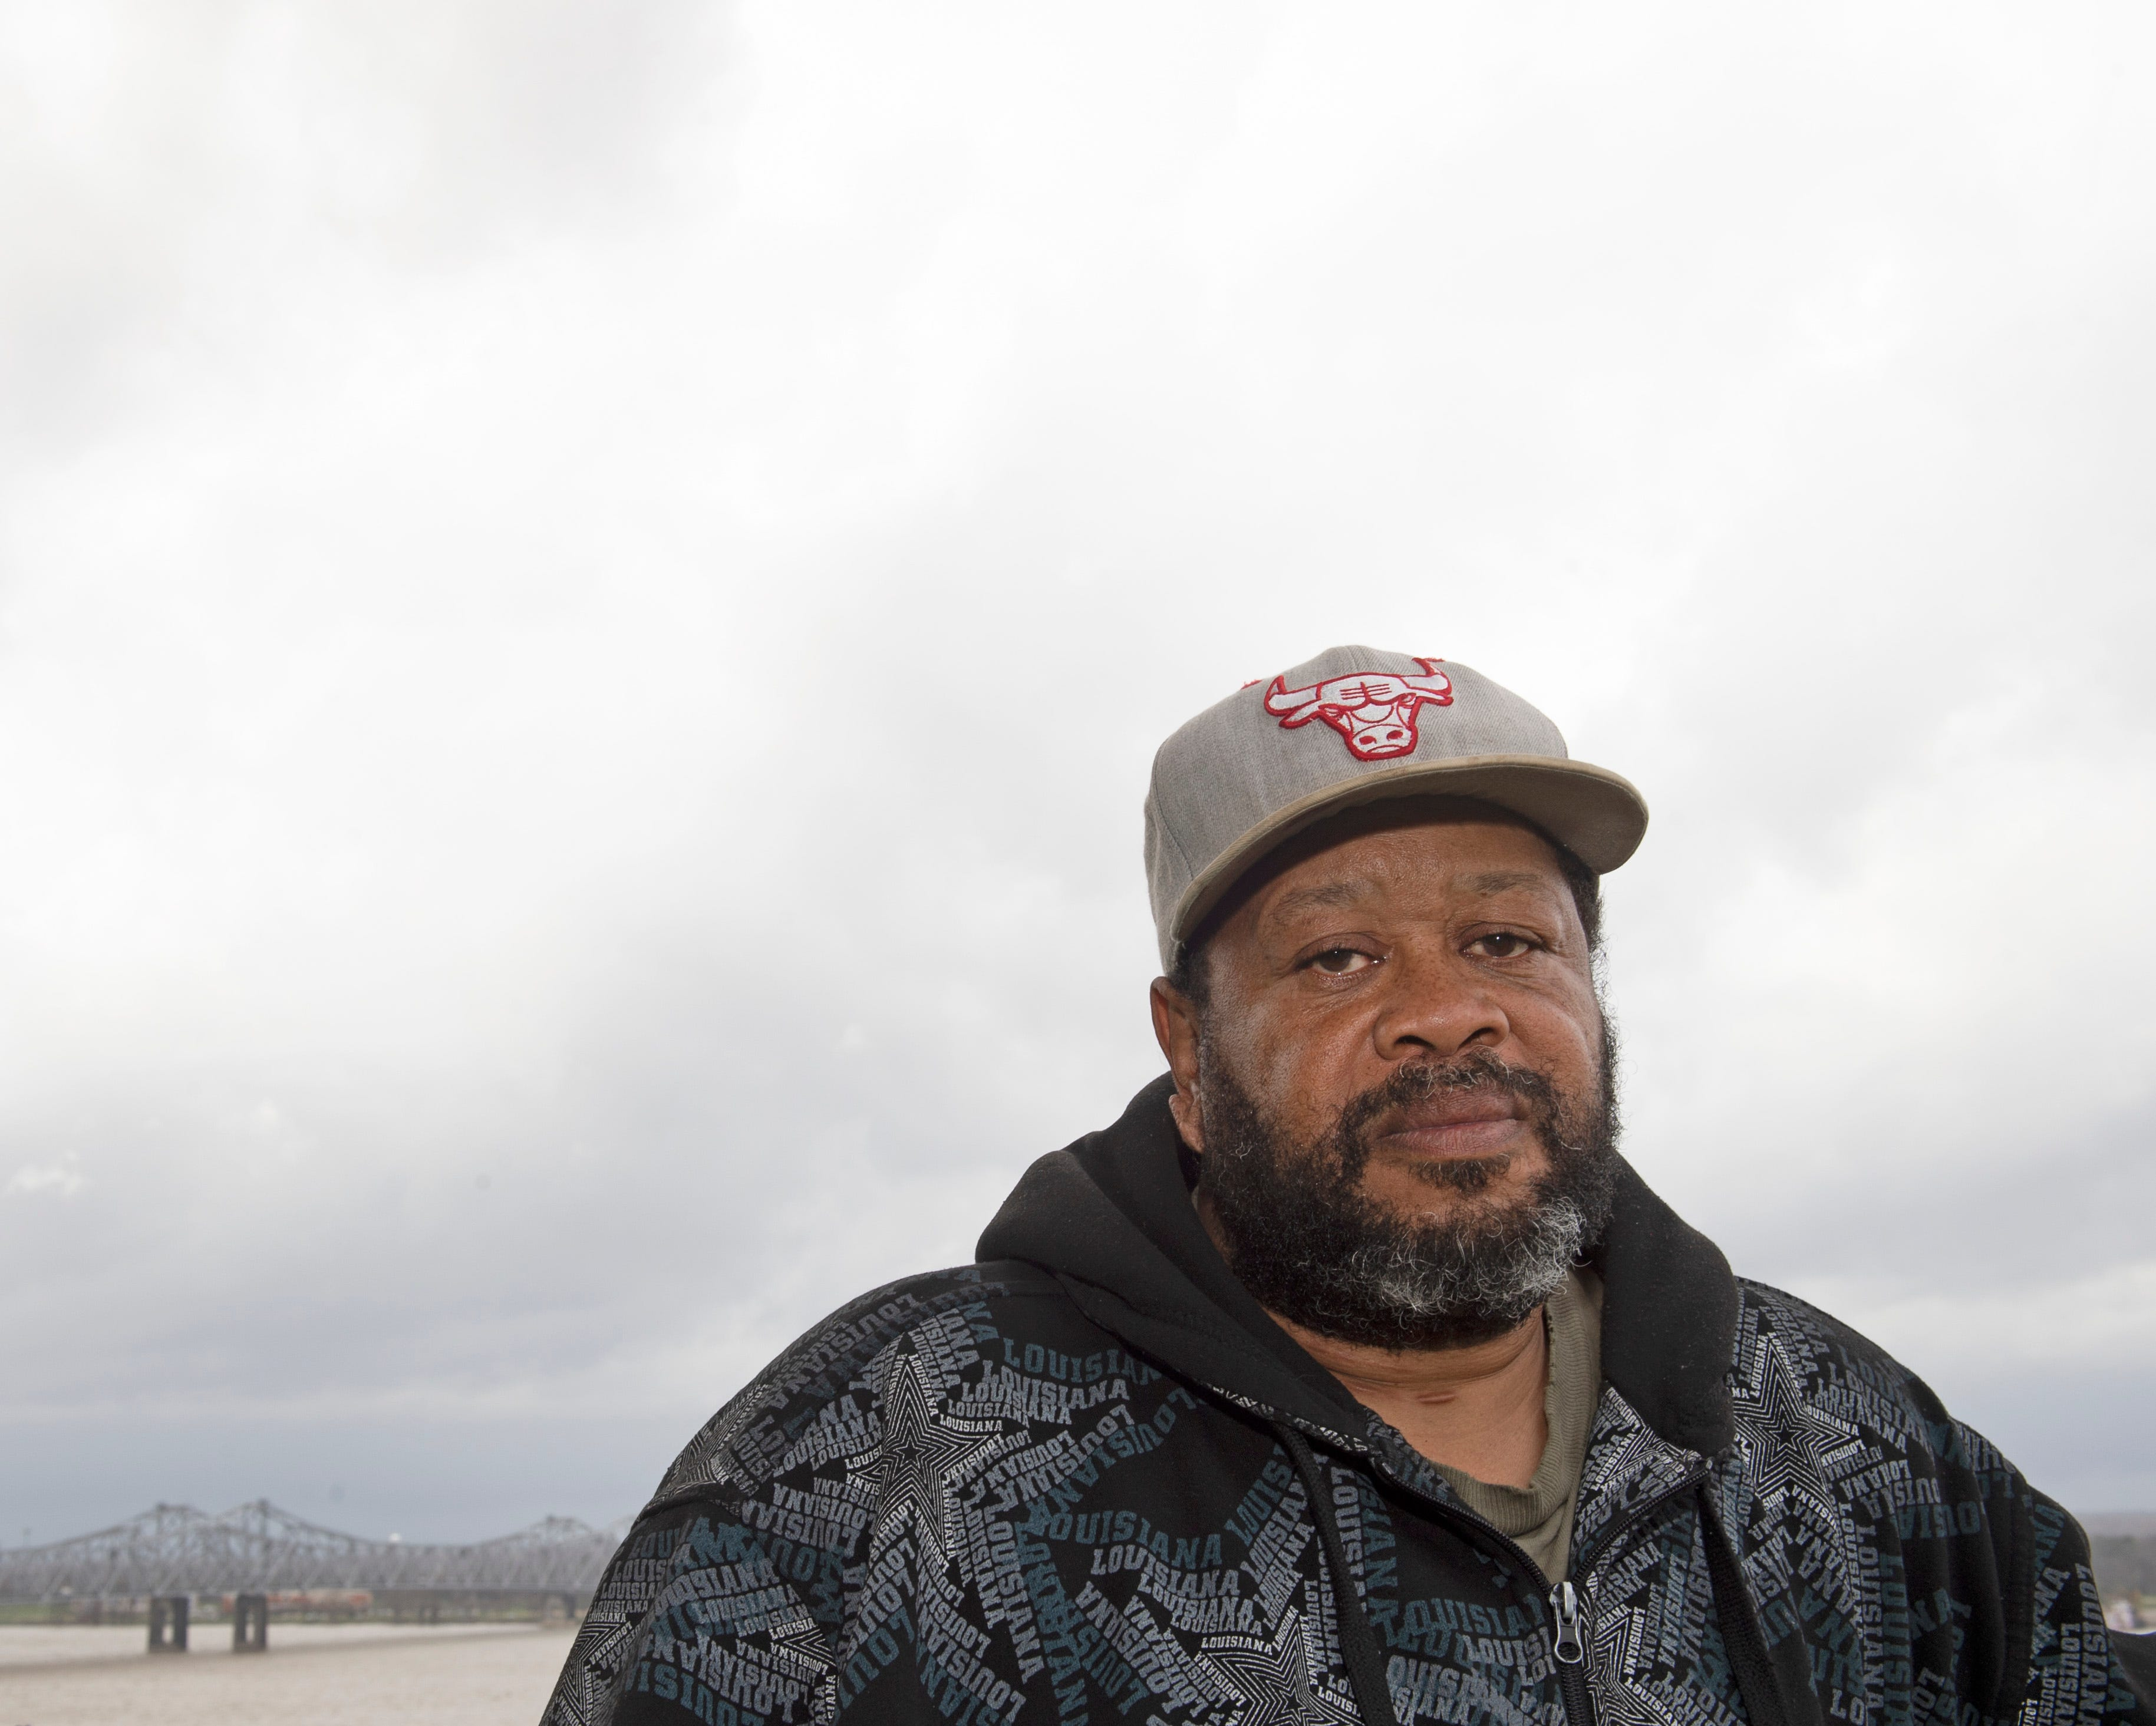 Leslie Jones was twice attacked by prisoners when he was an officer at Wilkinson County Correctional Facility in Woodville, Miss.